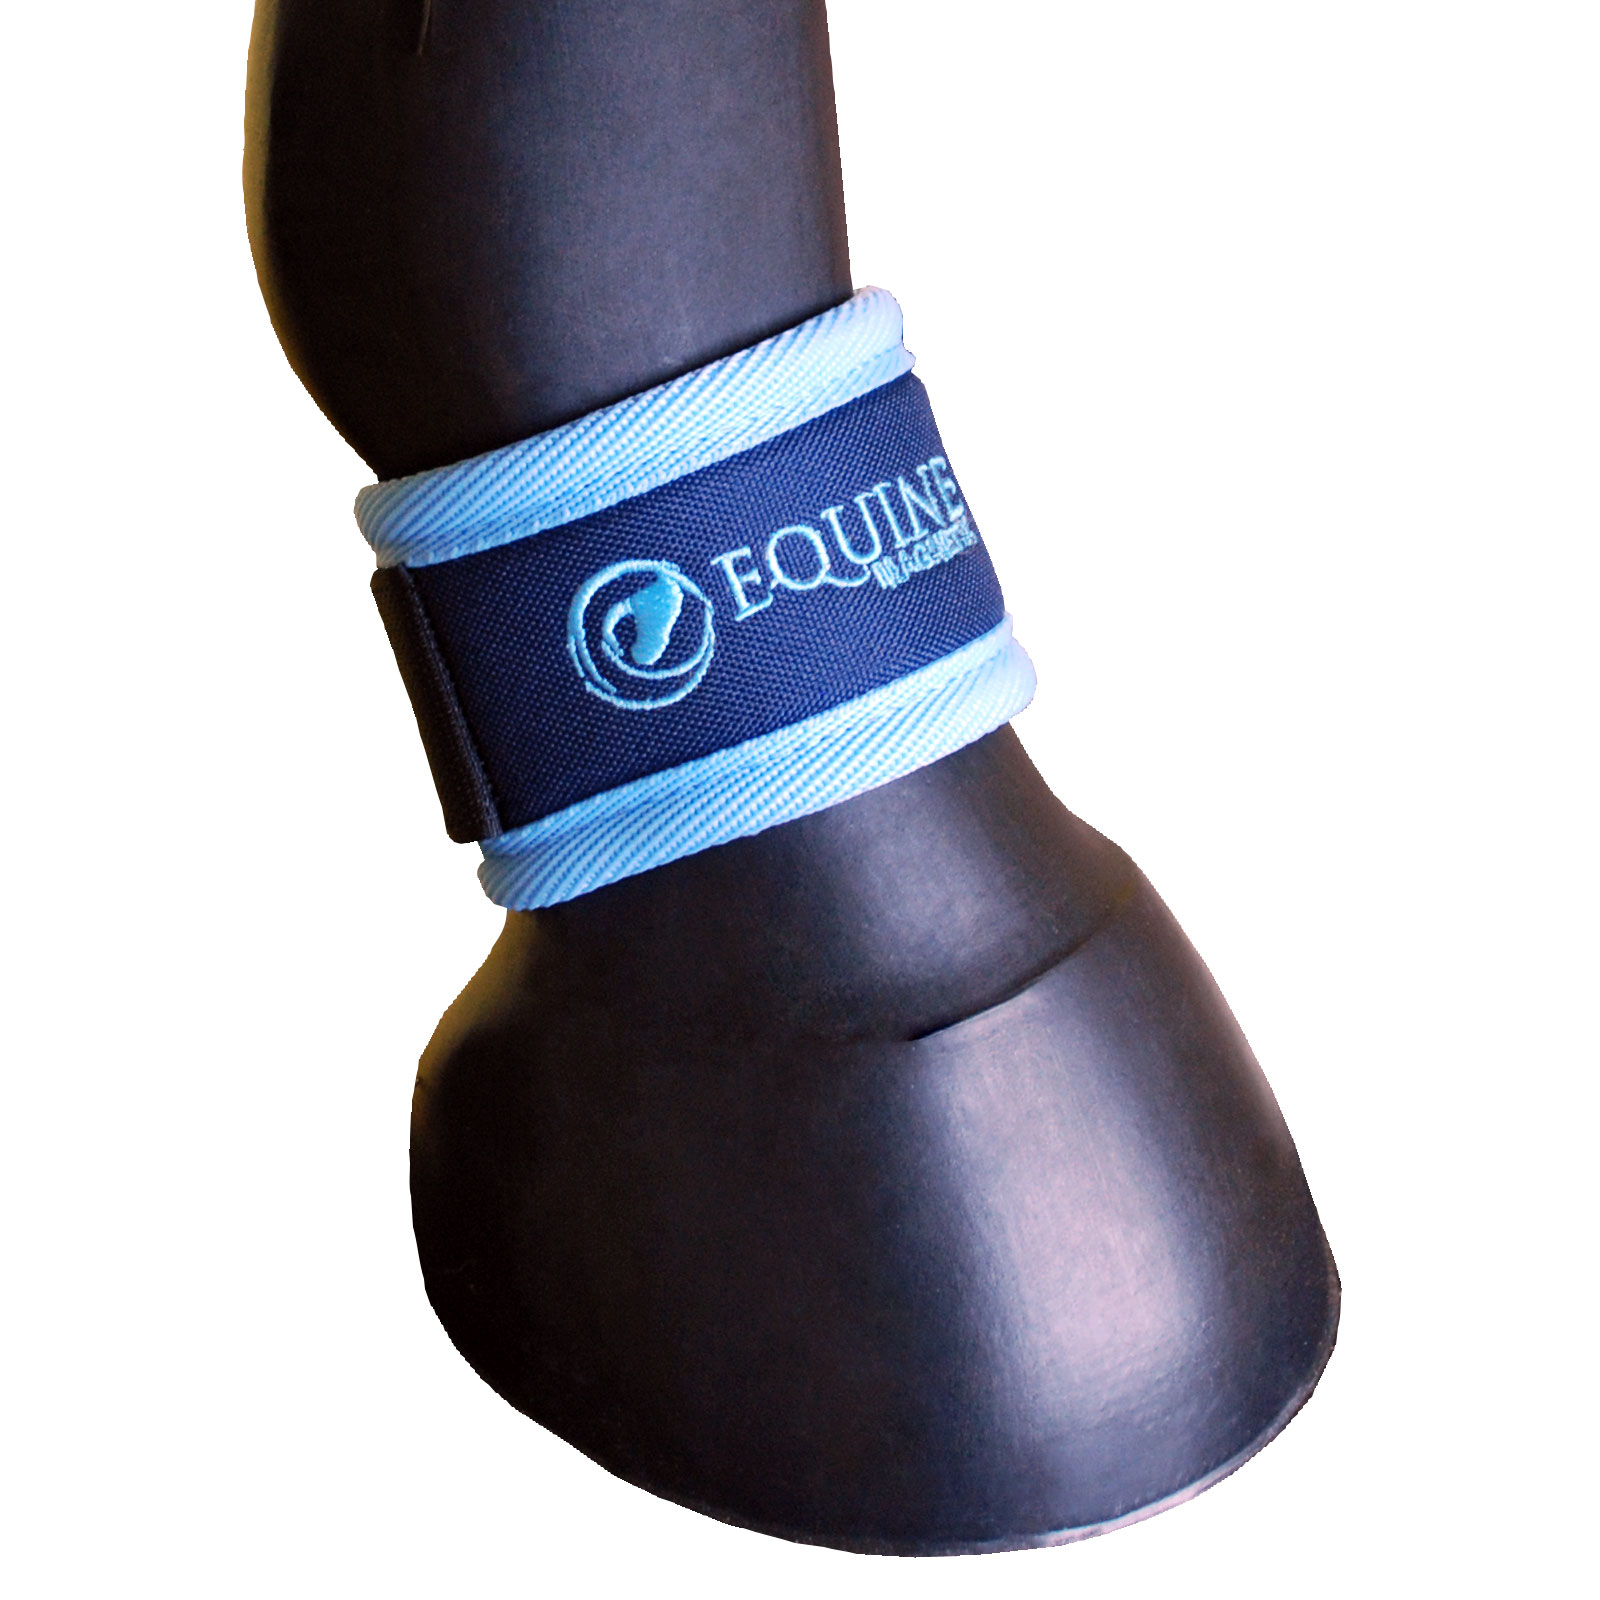 Magnetic ankle boots shown below the fetlock, available in sizes: extra small, small, full, large and extra large